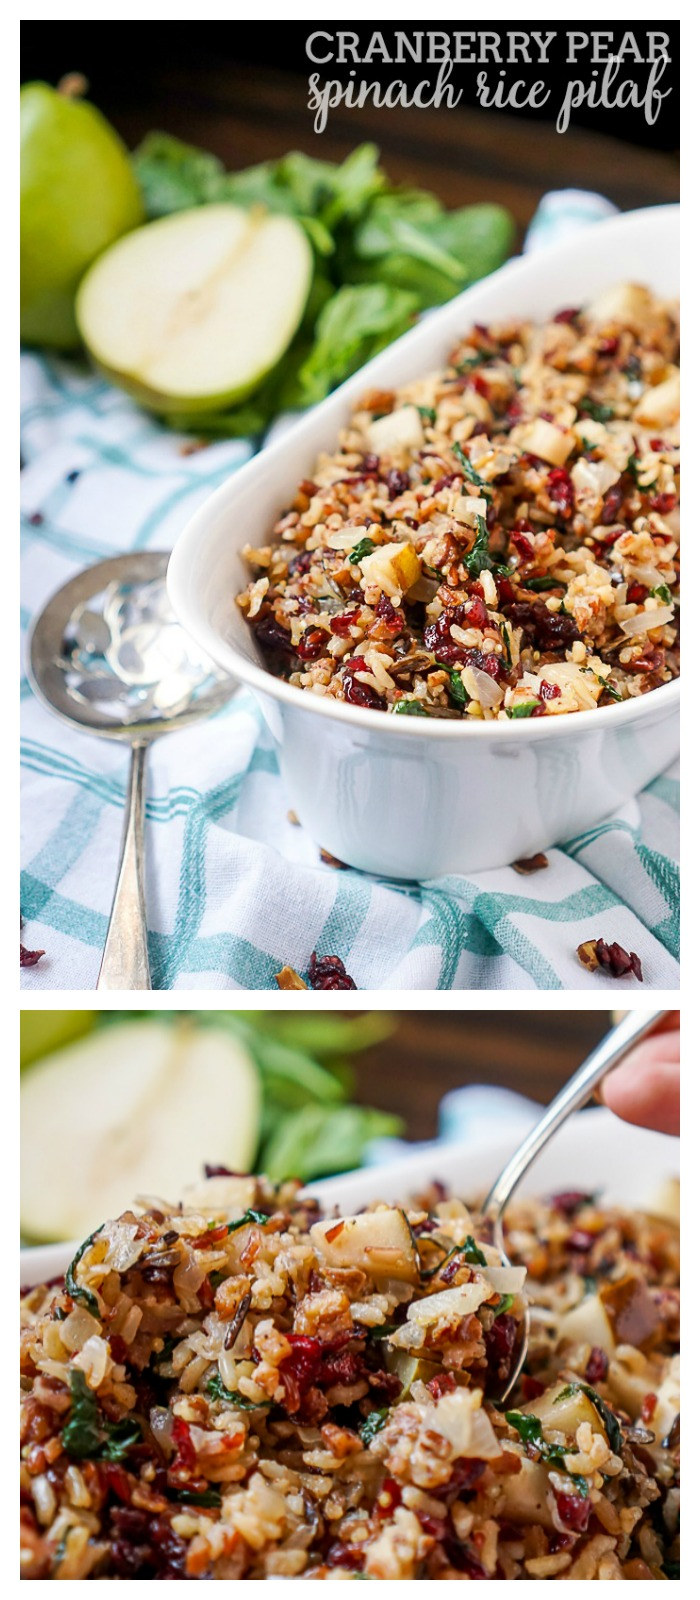 Cranberry Pear Spinach Rice Pilaf Recipe - A tasty rice recipe that makes a beautiful holiday side dish or an easy dinner idea if you just add chicken! |The Love Nerds AD VintageMinute